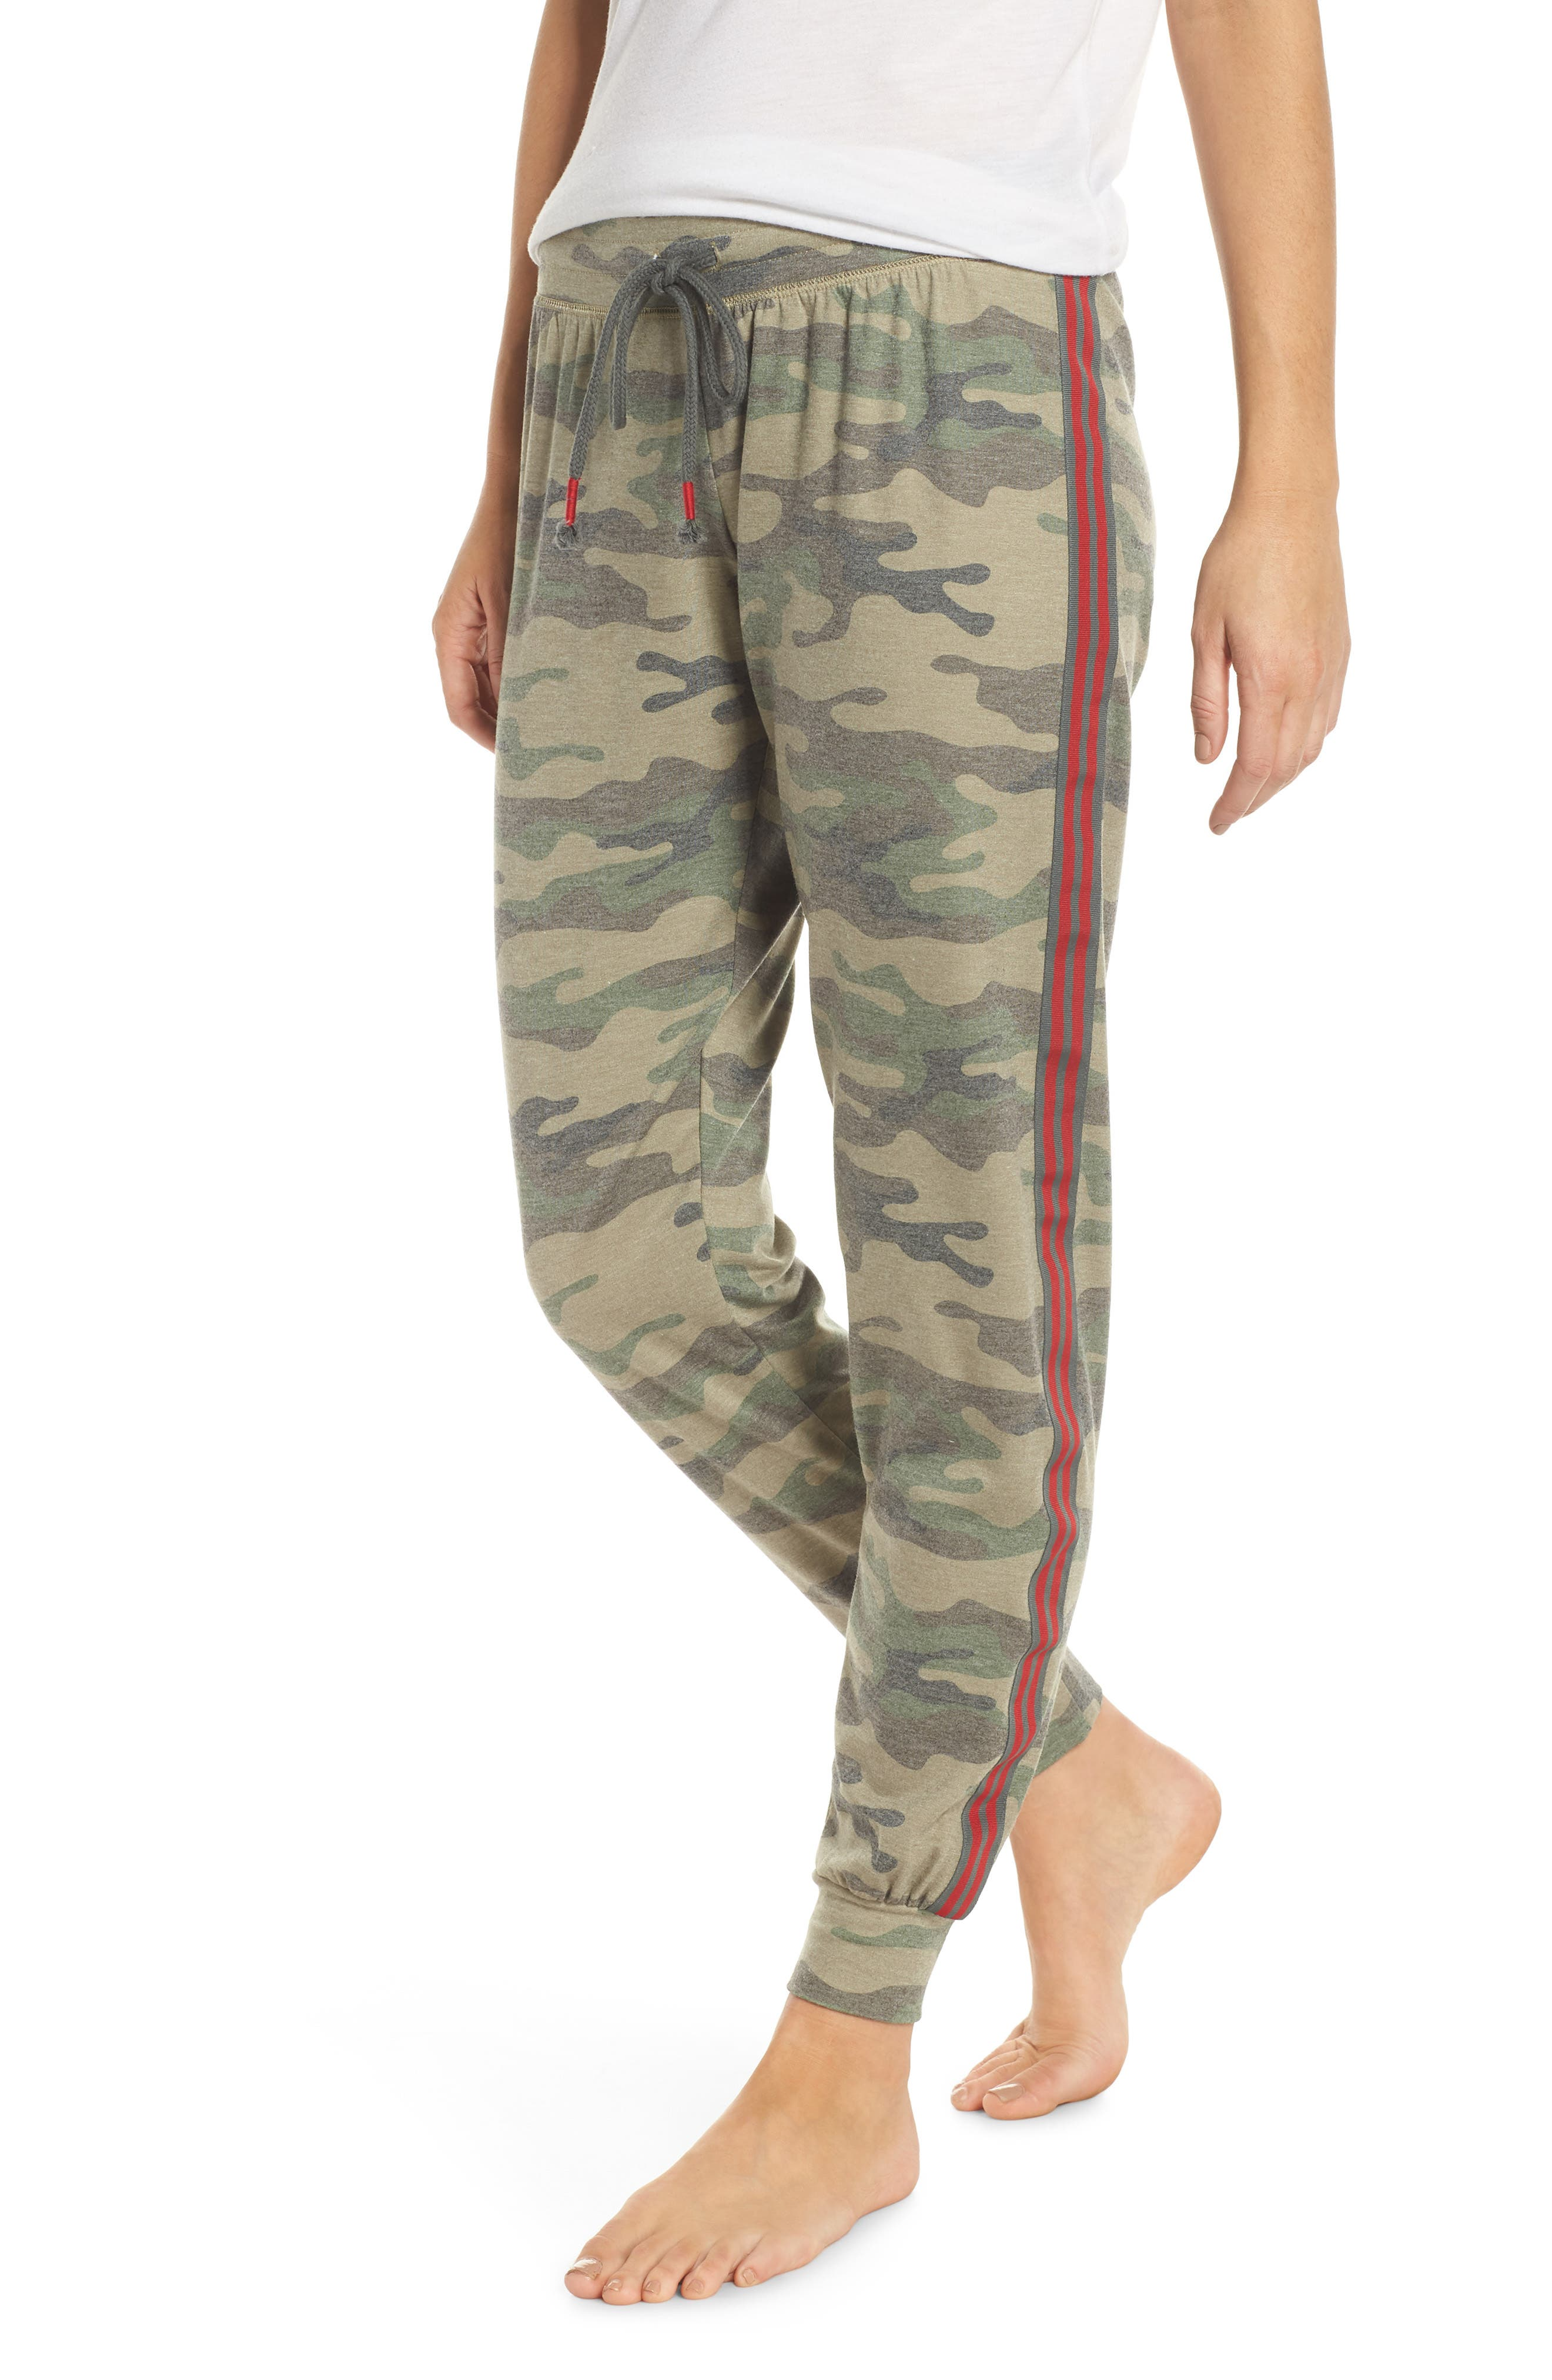 PJ SALVAGE, Sweatpants, Main thumbnail 1, color, 318